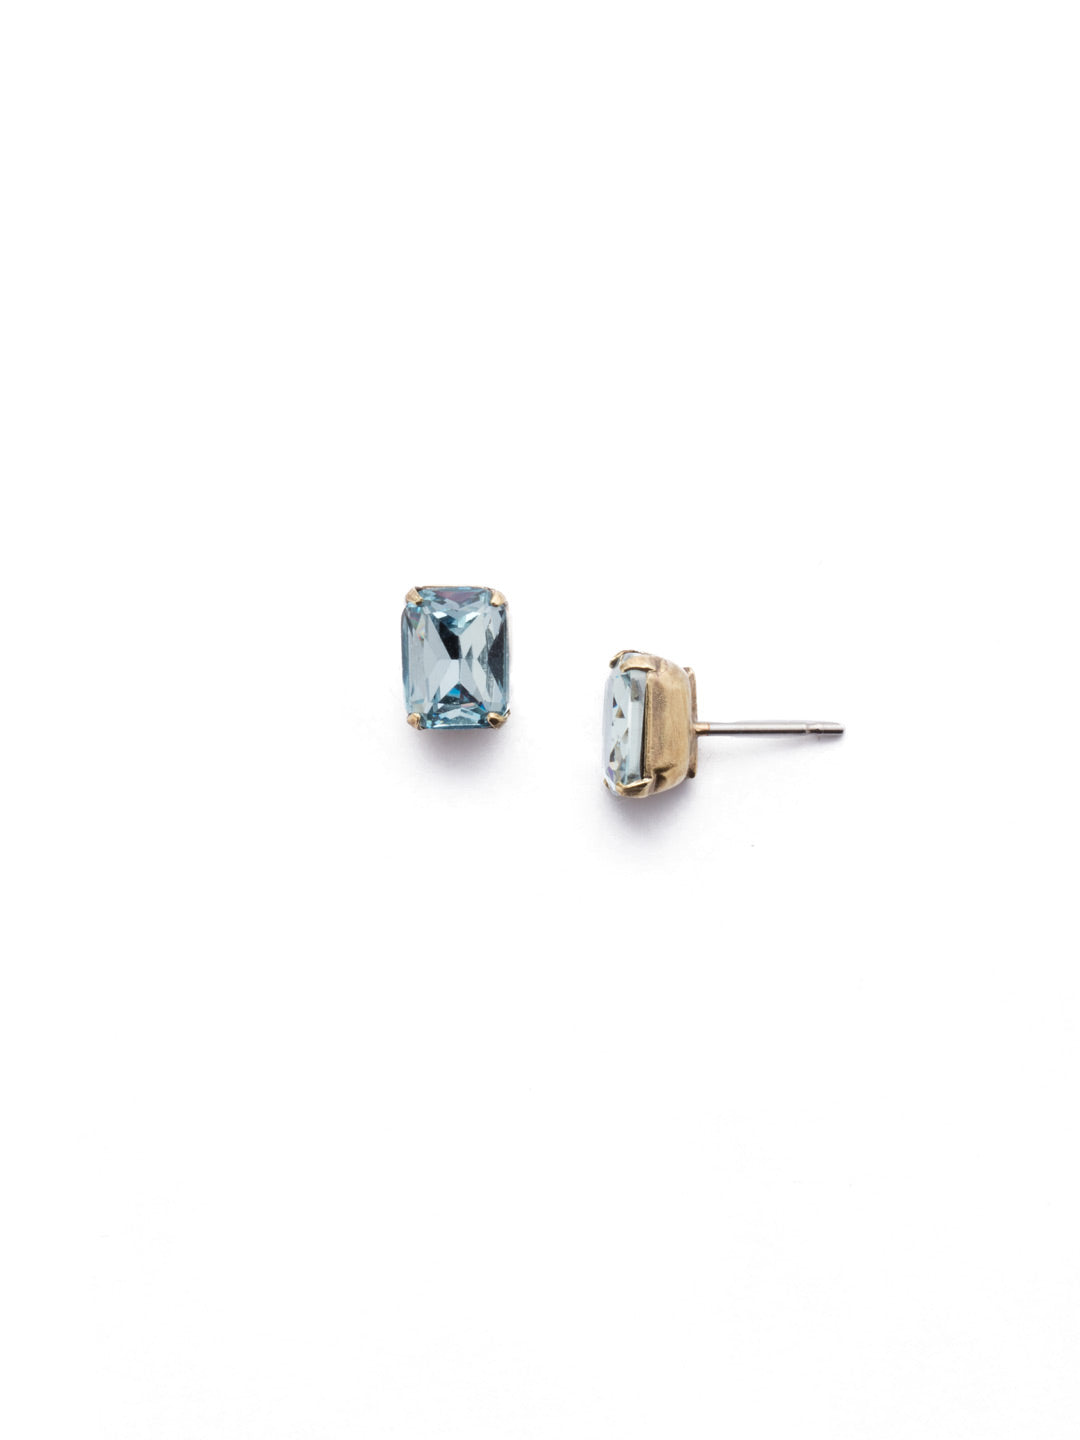 Mini Emerald Cut Stud Earrings - EBY42AGLAQ